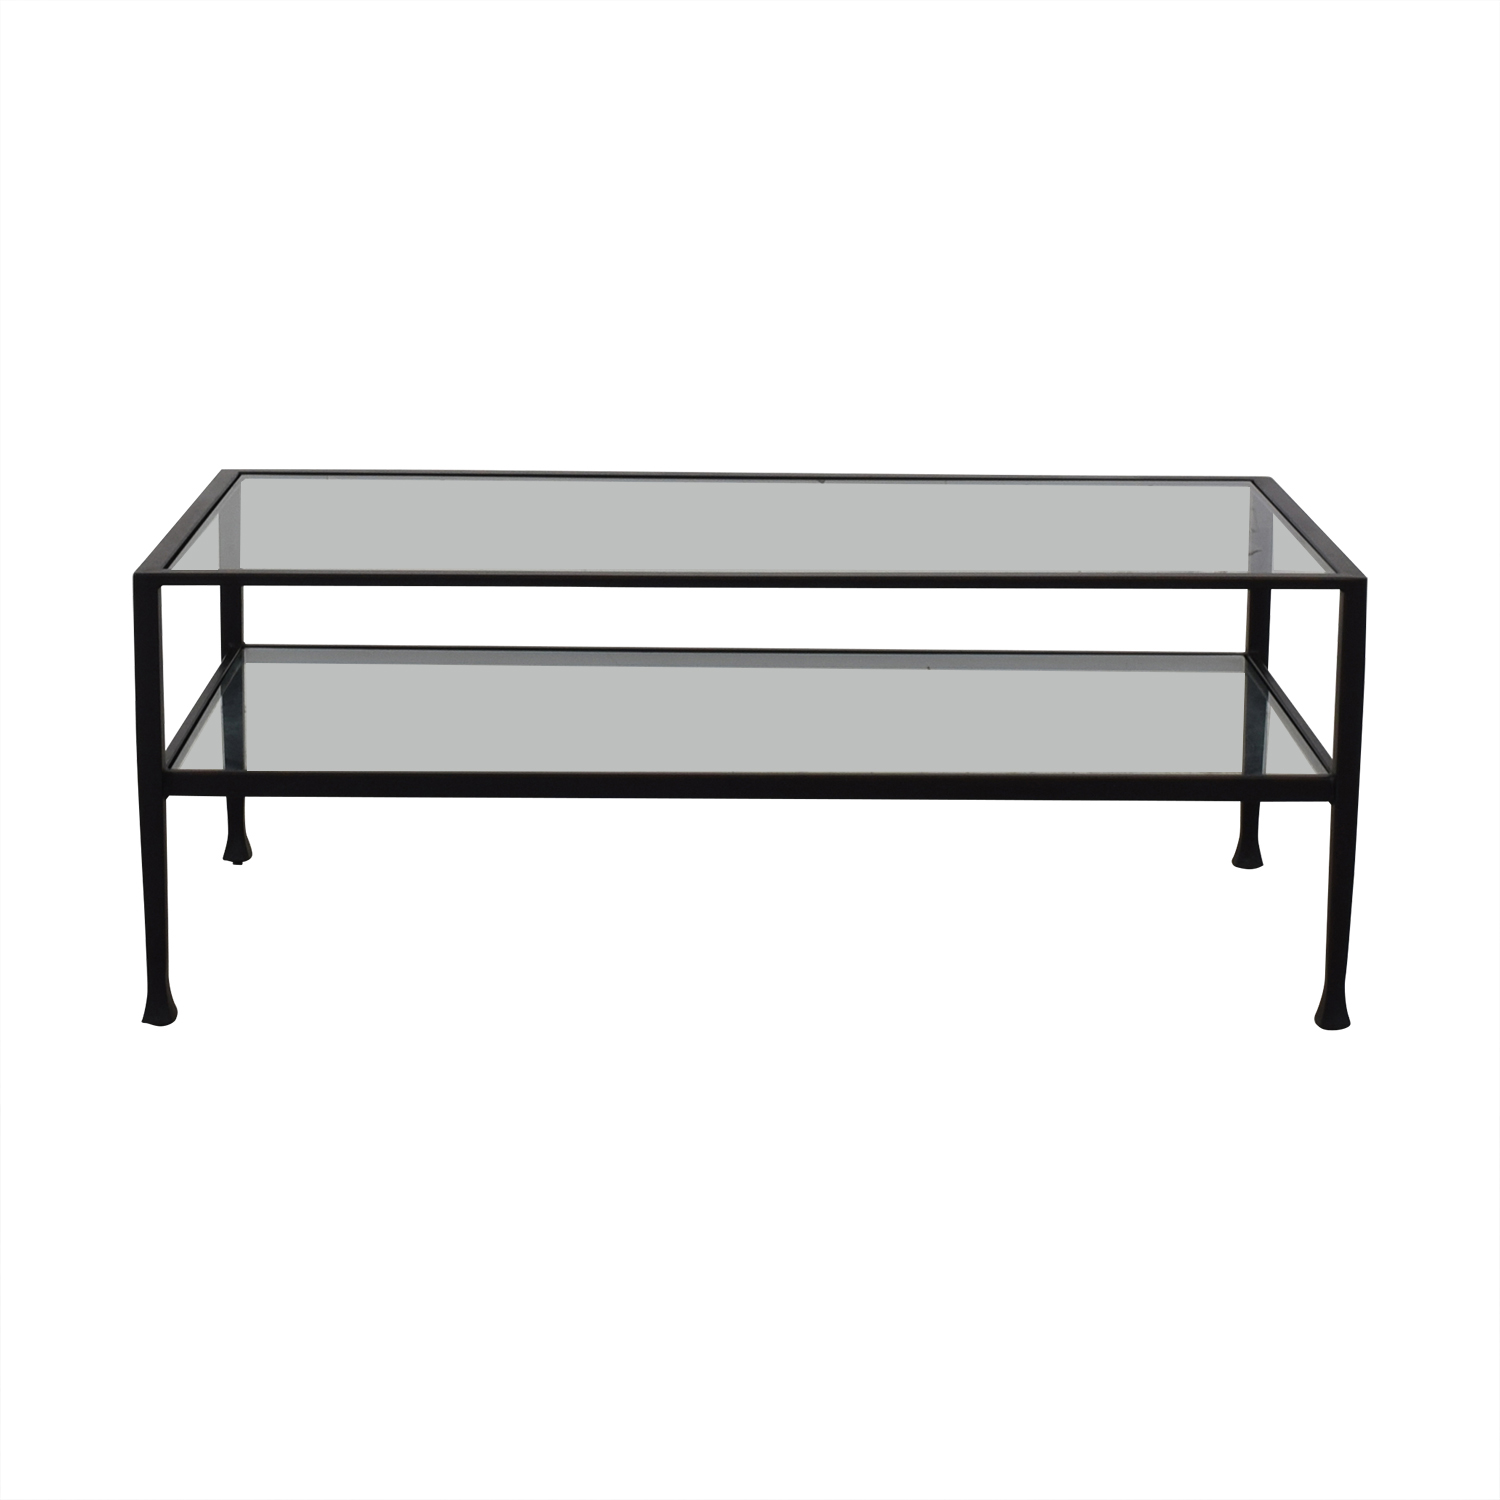 Pottery Barn Pottery Barn Tanner Metal & Glass Coffee Table dimensions